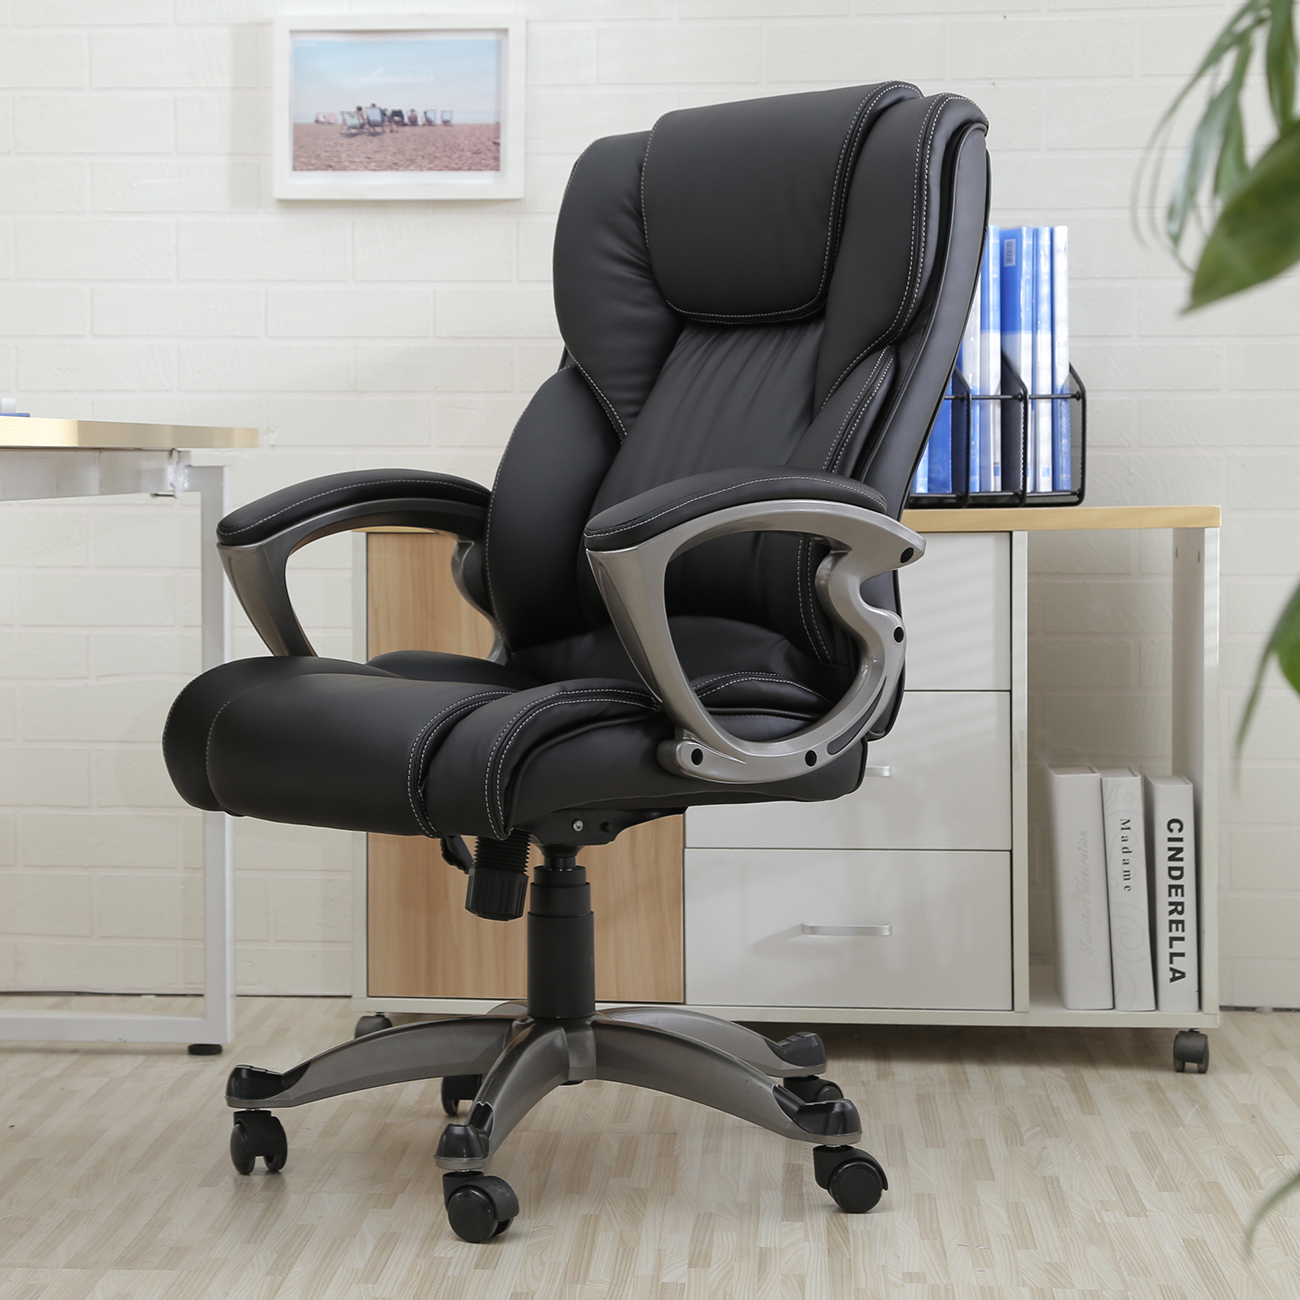 Executive Chair Black Pu Leather High Back Office Chair Executive Task